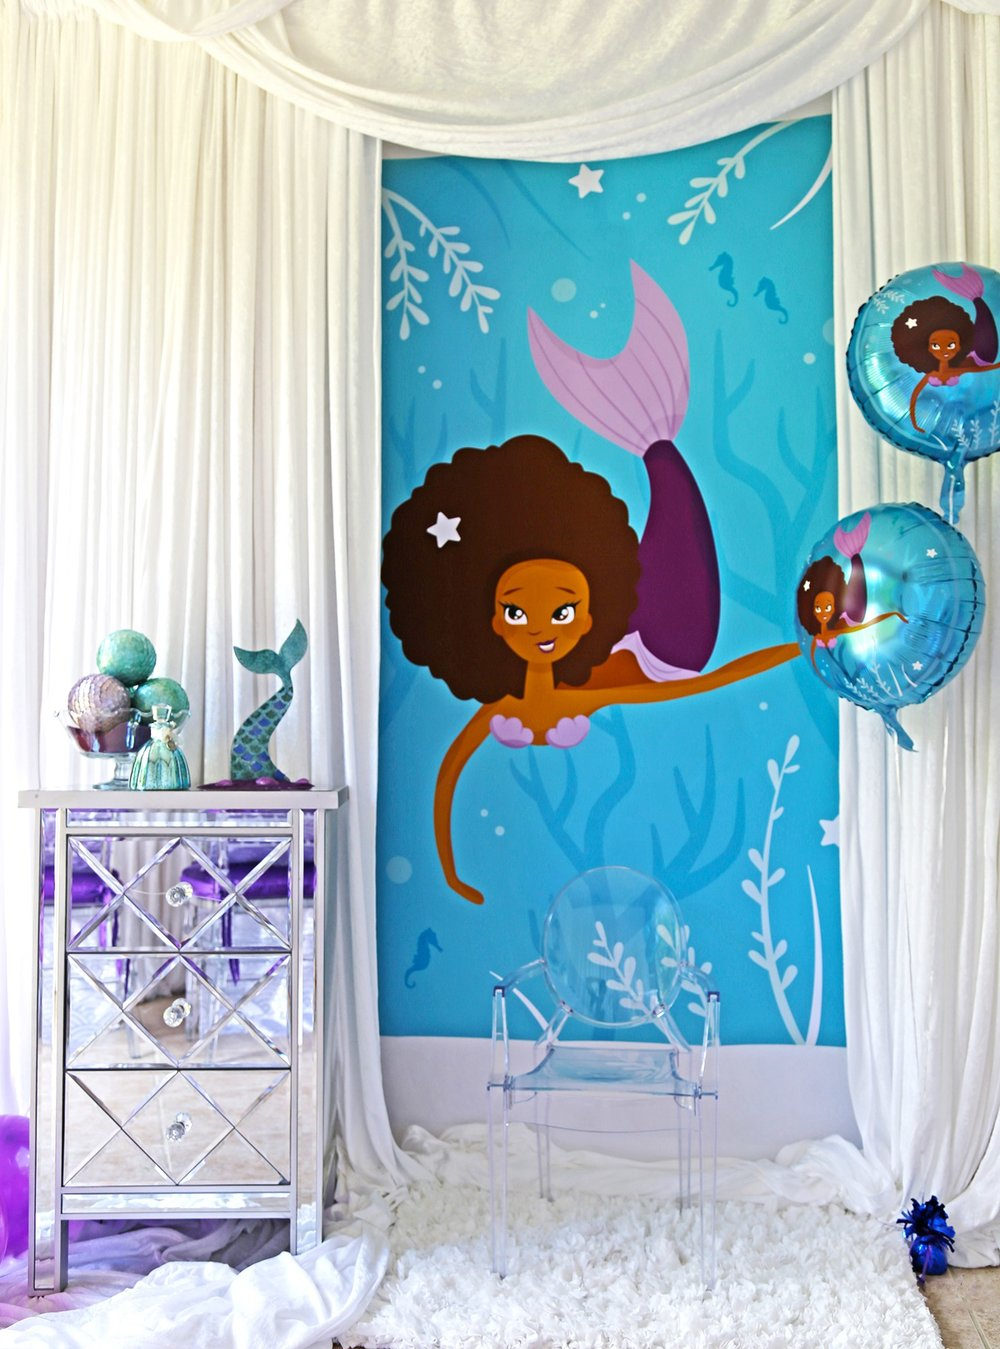 mermaid-party-supplies-photo-booth.jpg